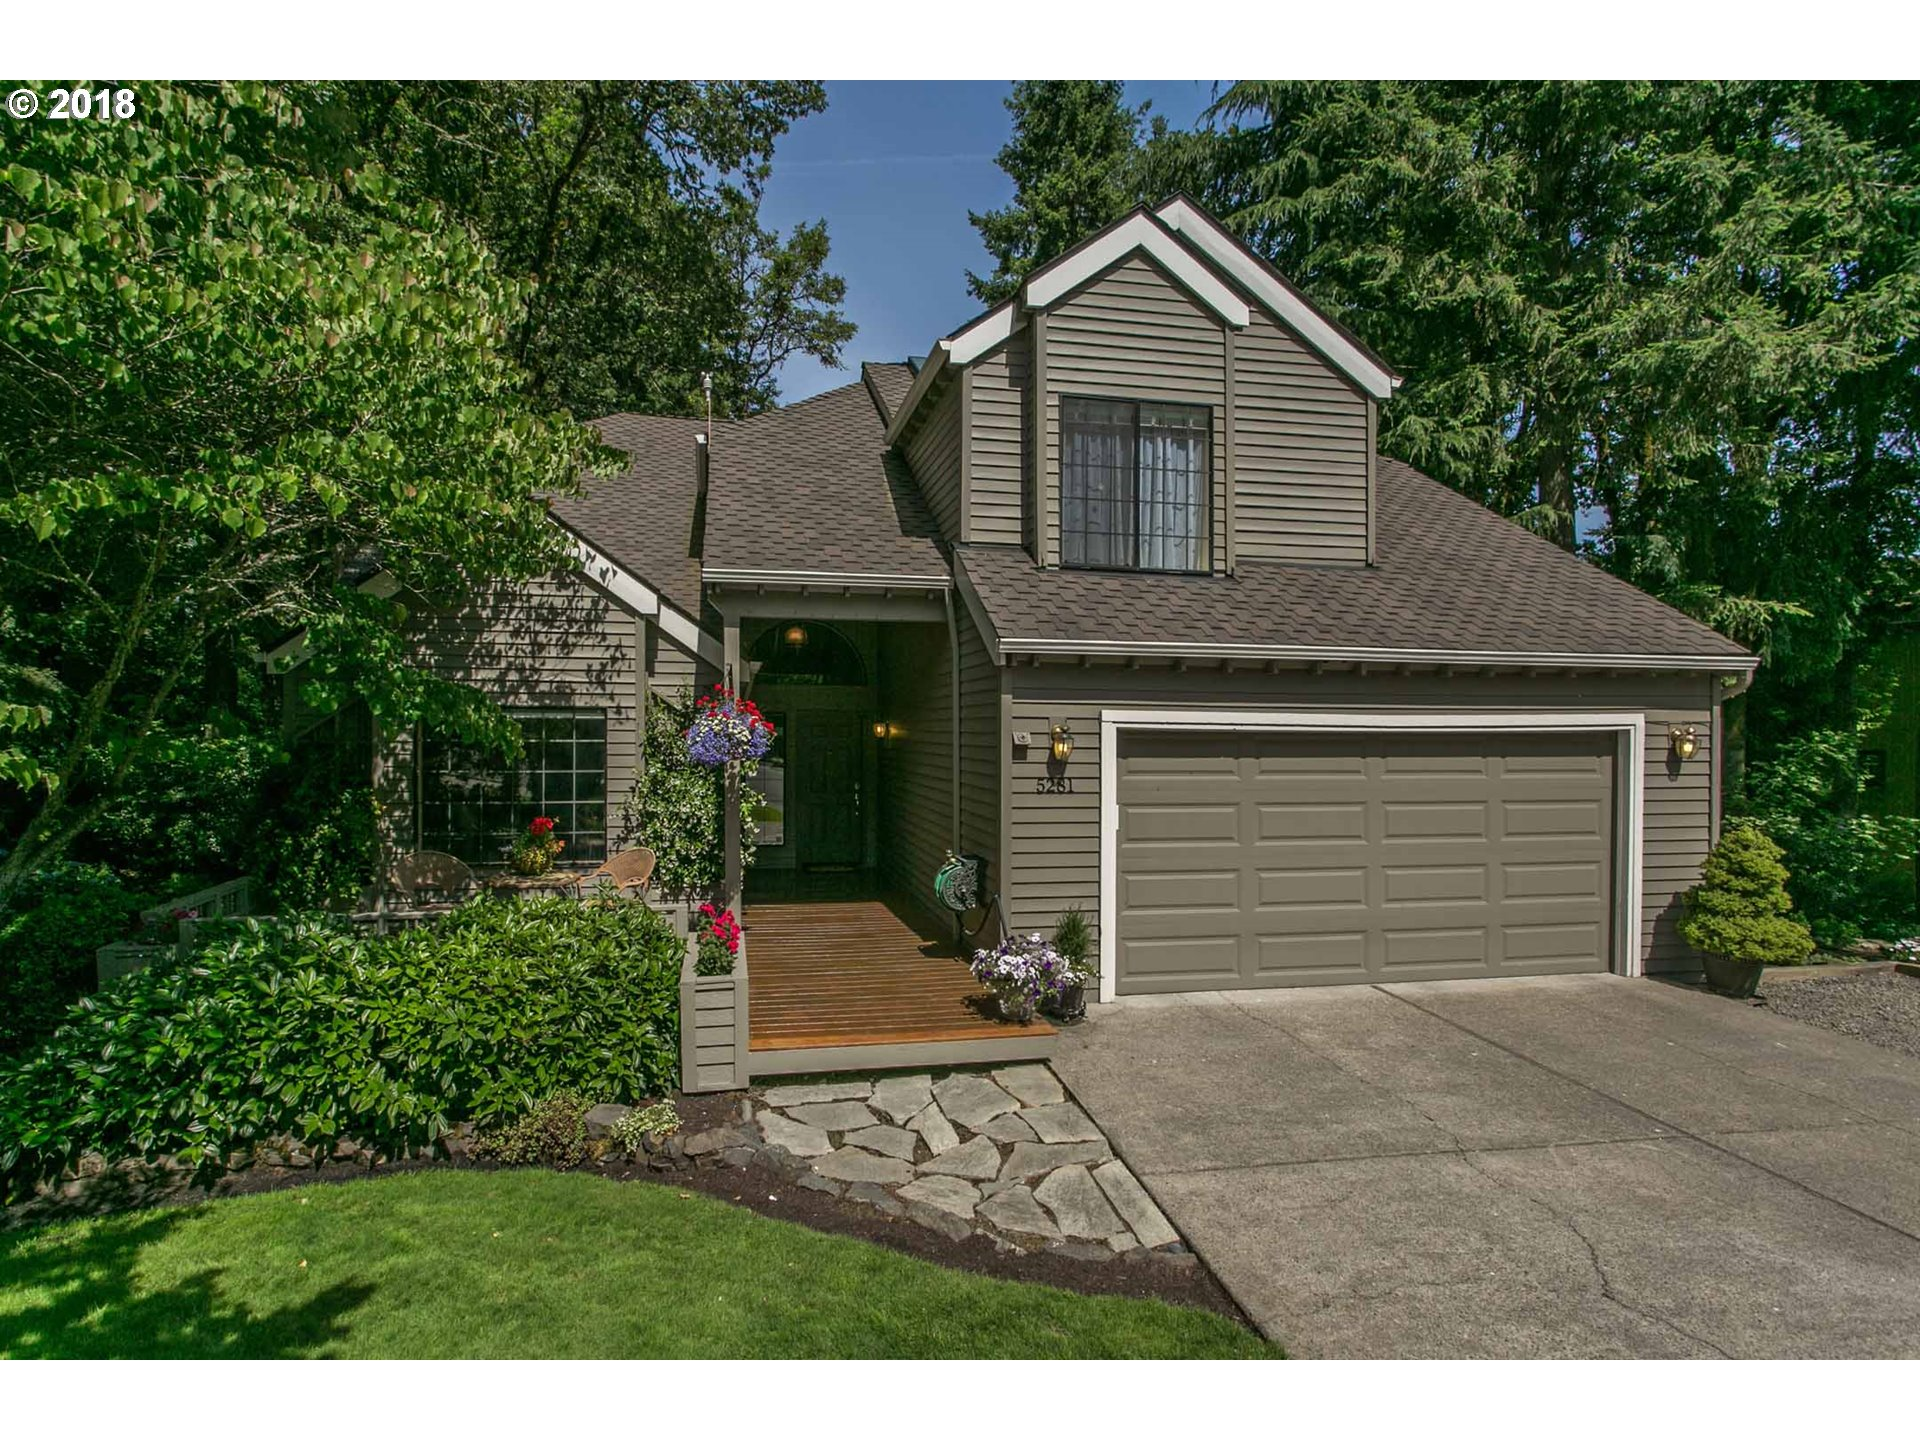 5281 WINDSOR TER, West Linn, OR 97068